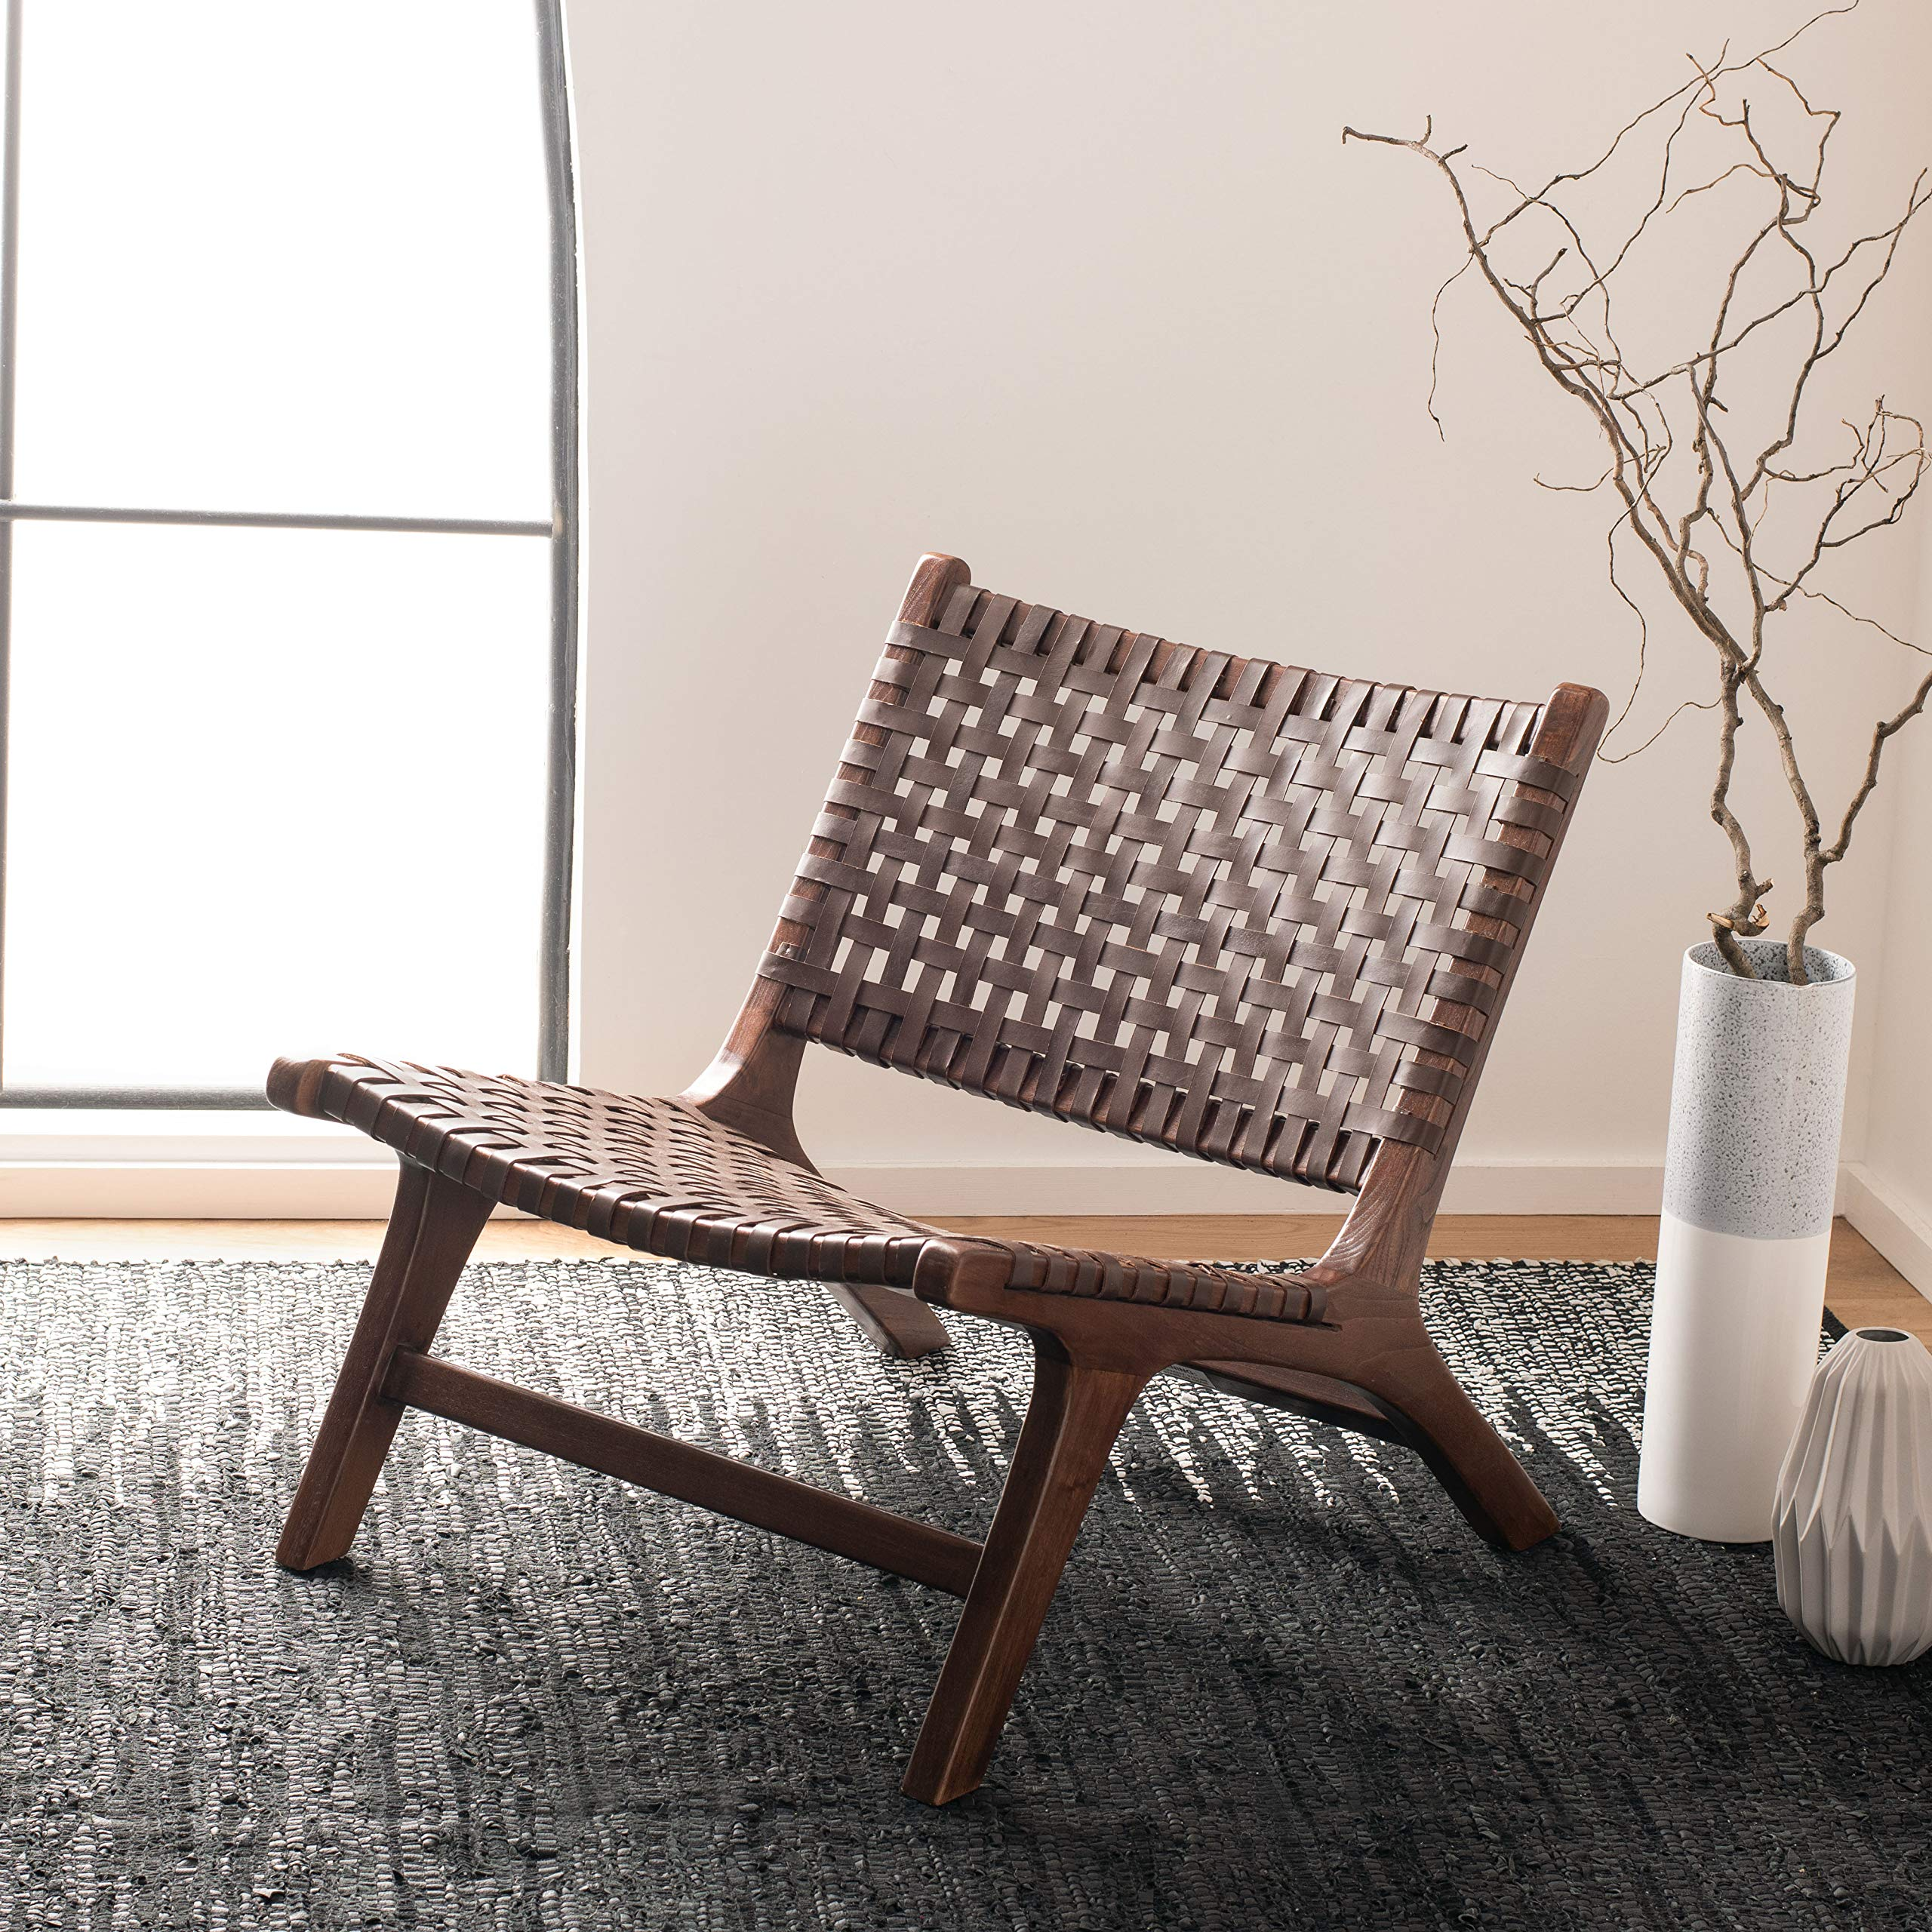 Safavieh Home Luna Brown Leather Woven Accent Chair, by Safavieh